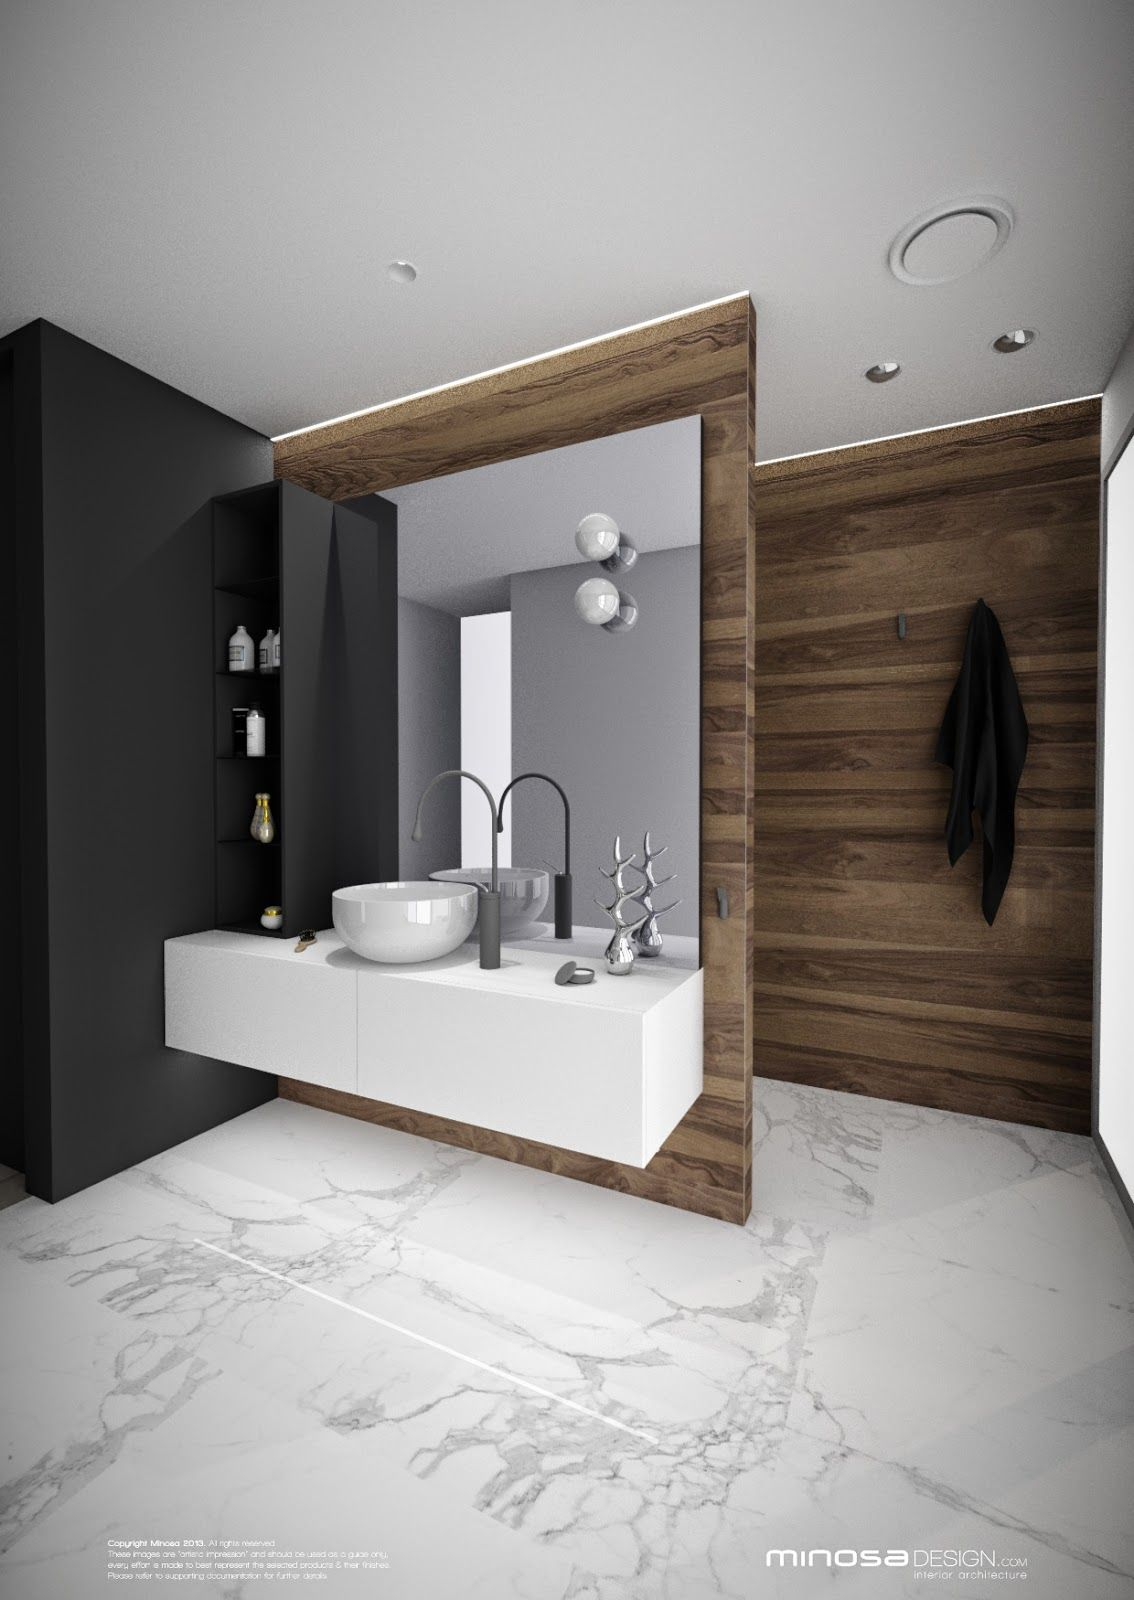 Bathroom renovation design ideas want to build this for Find bathroom designs